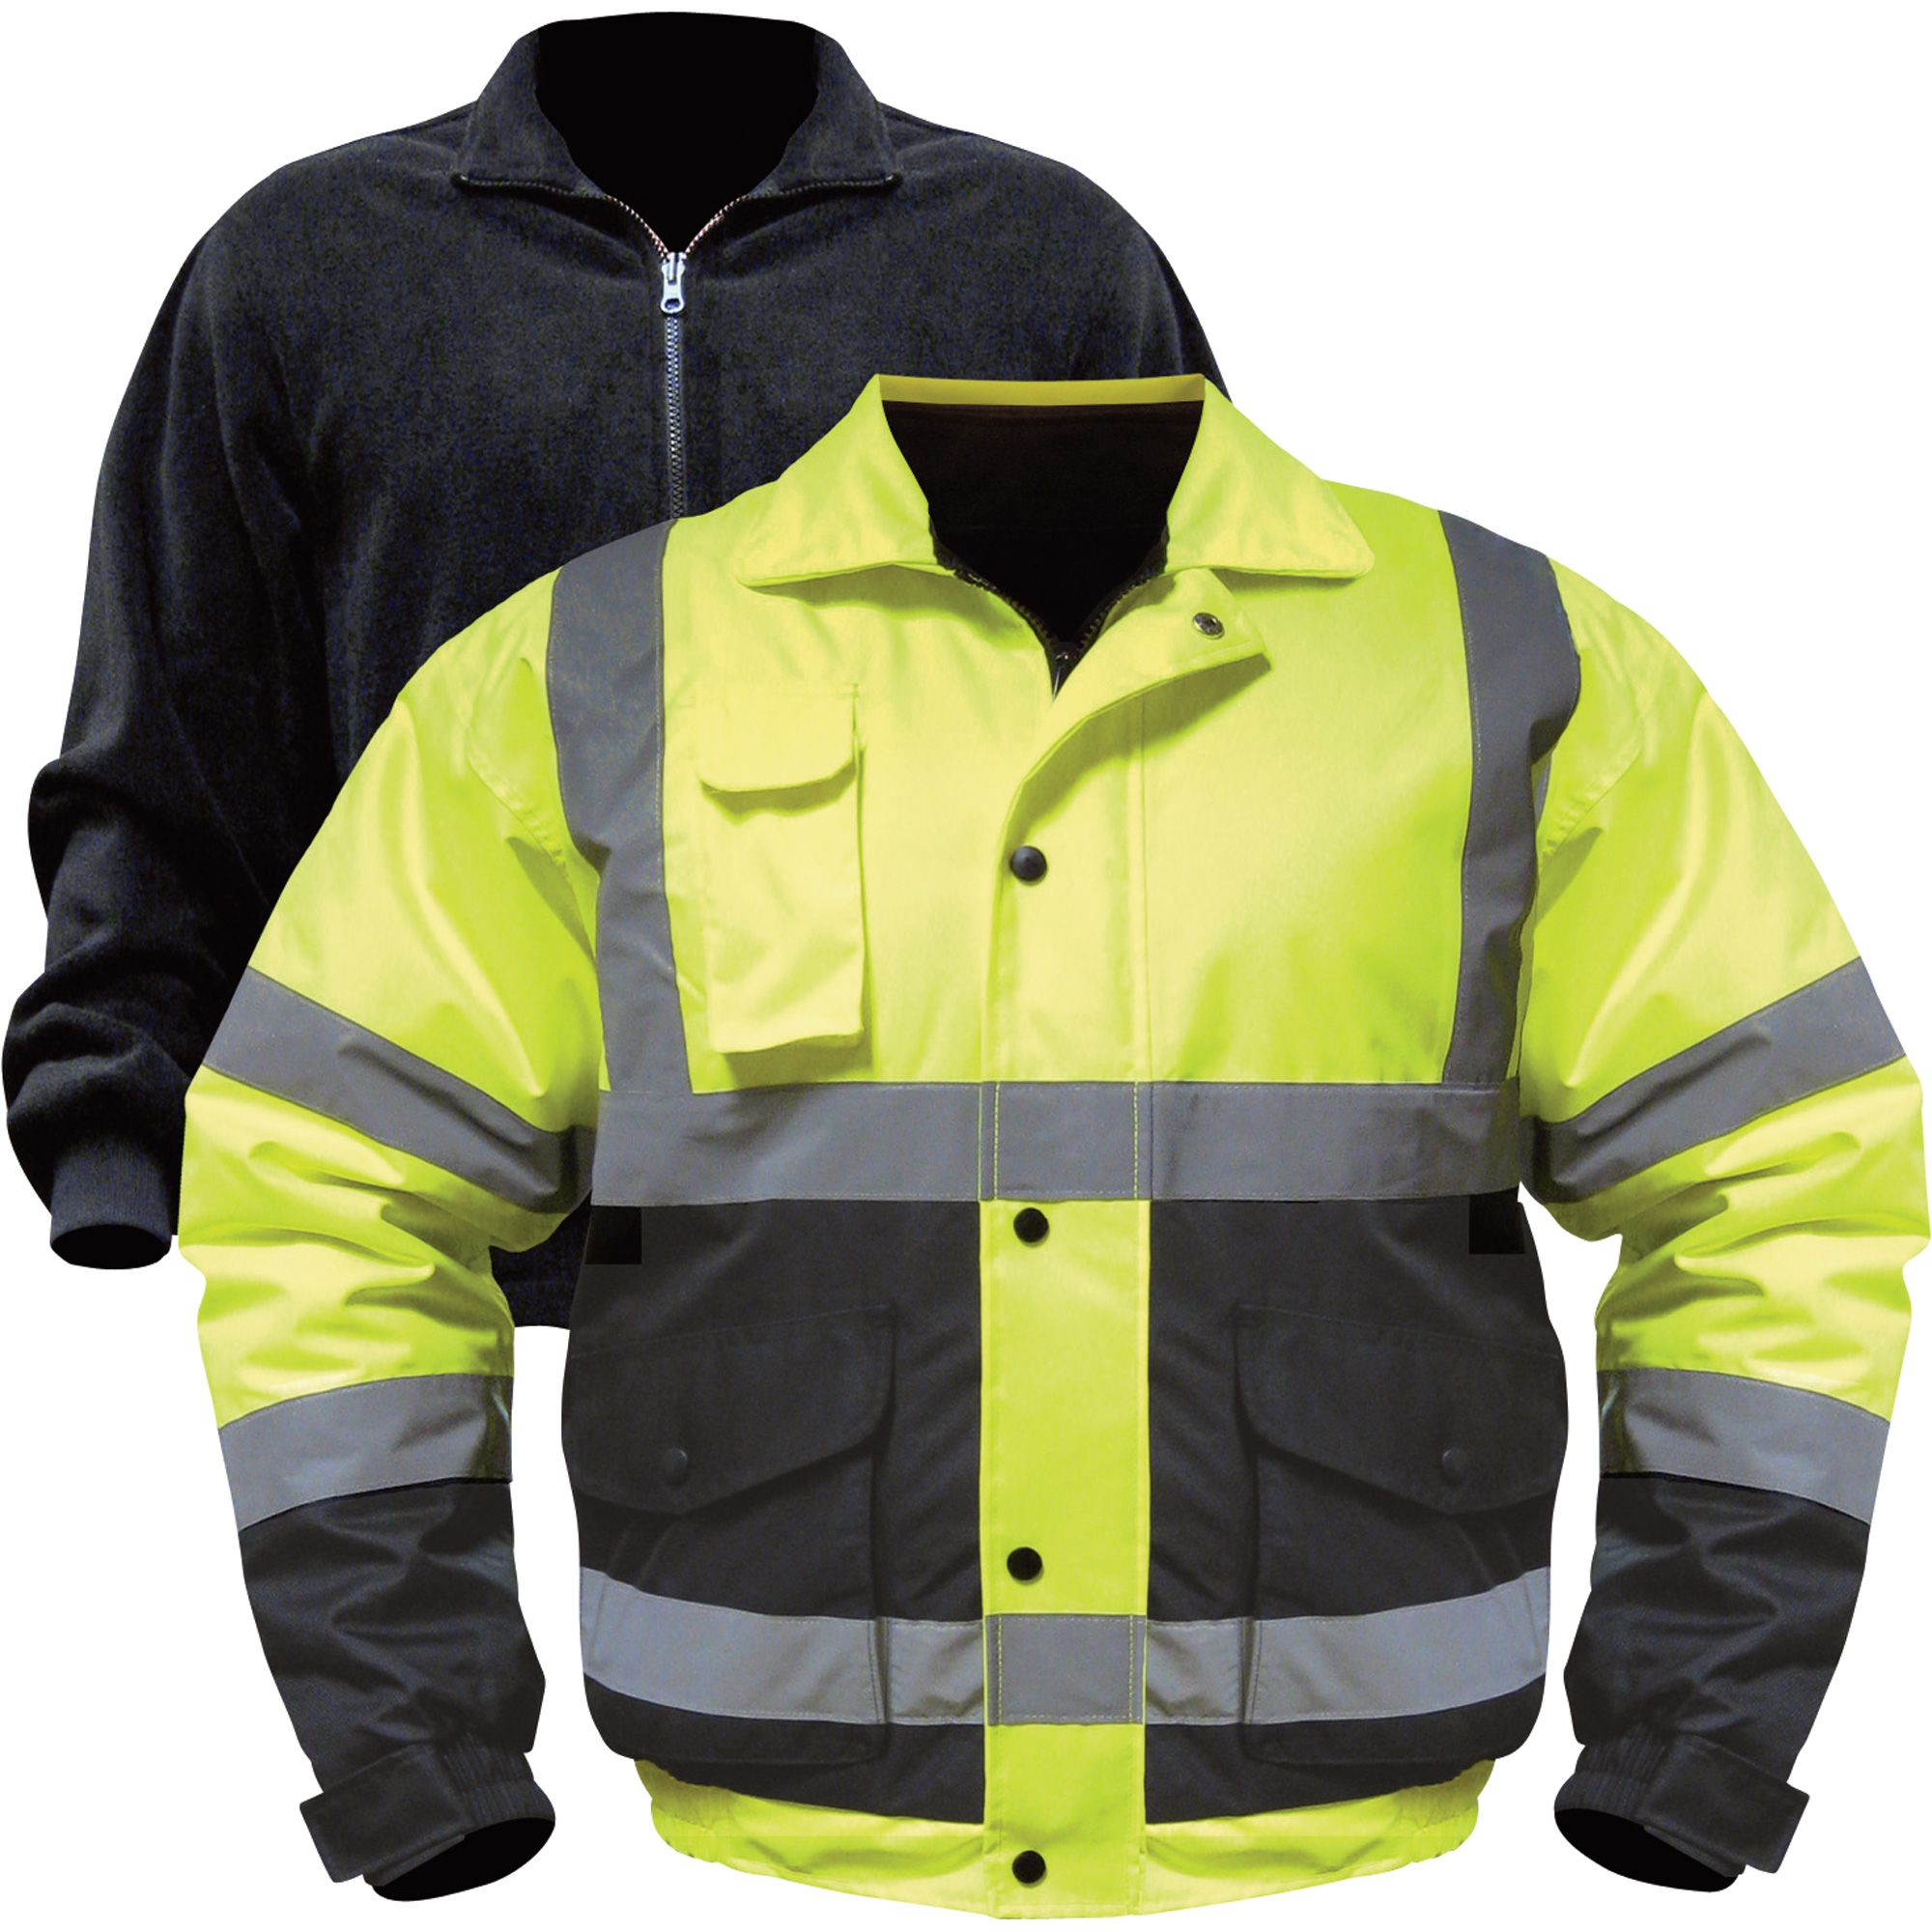 Class 3 highvisibility 3in1 bomber jacket with zipout